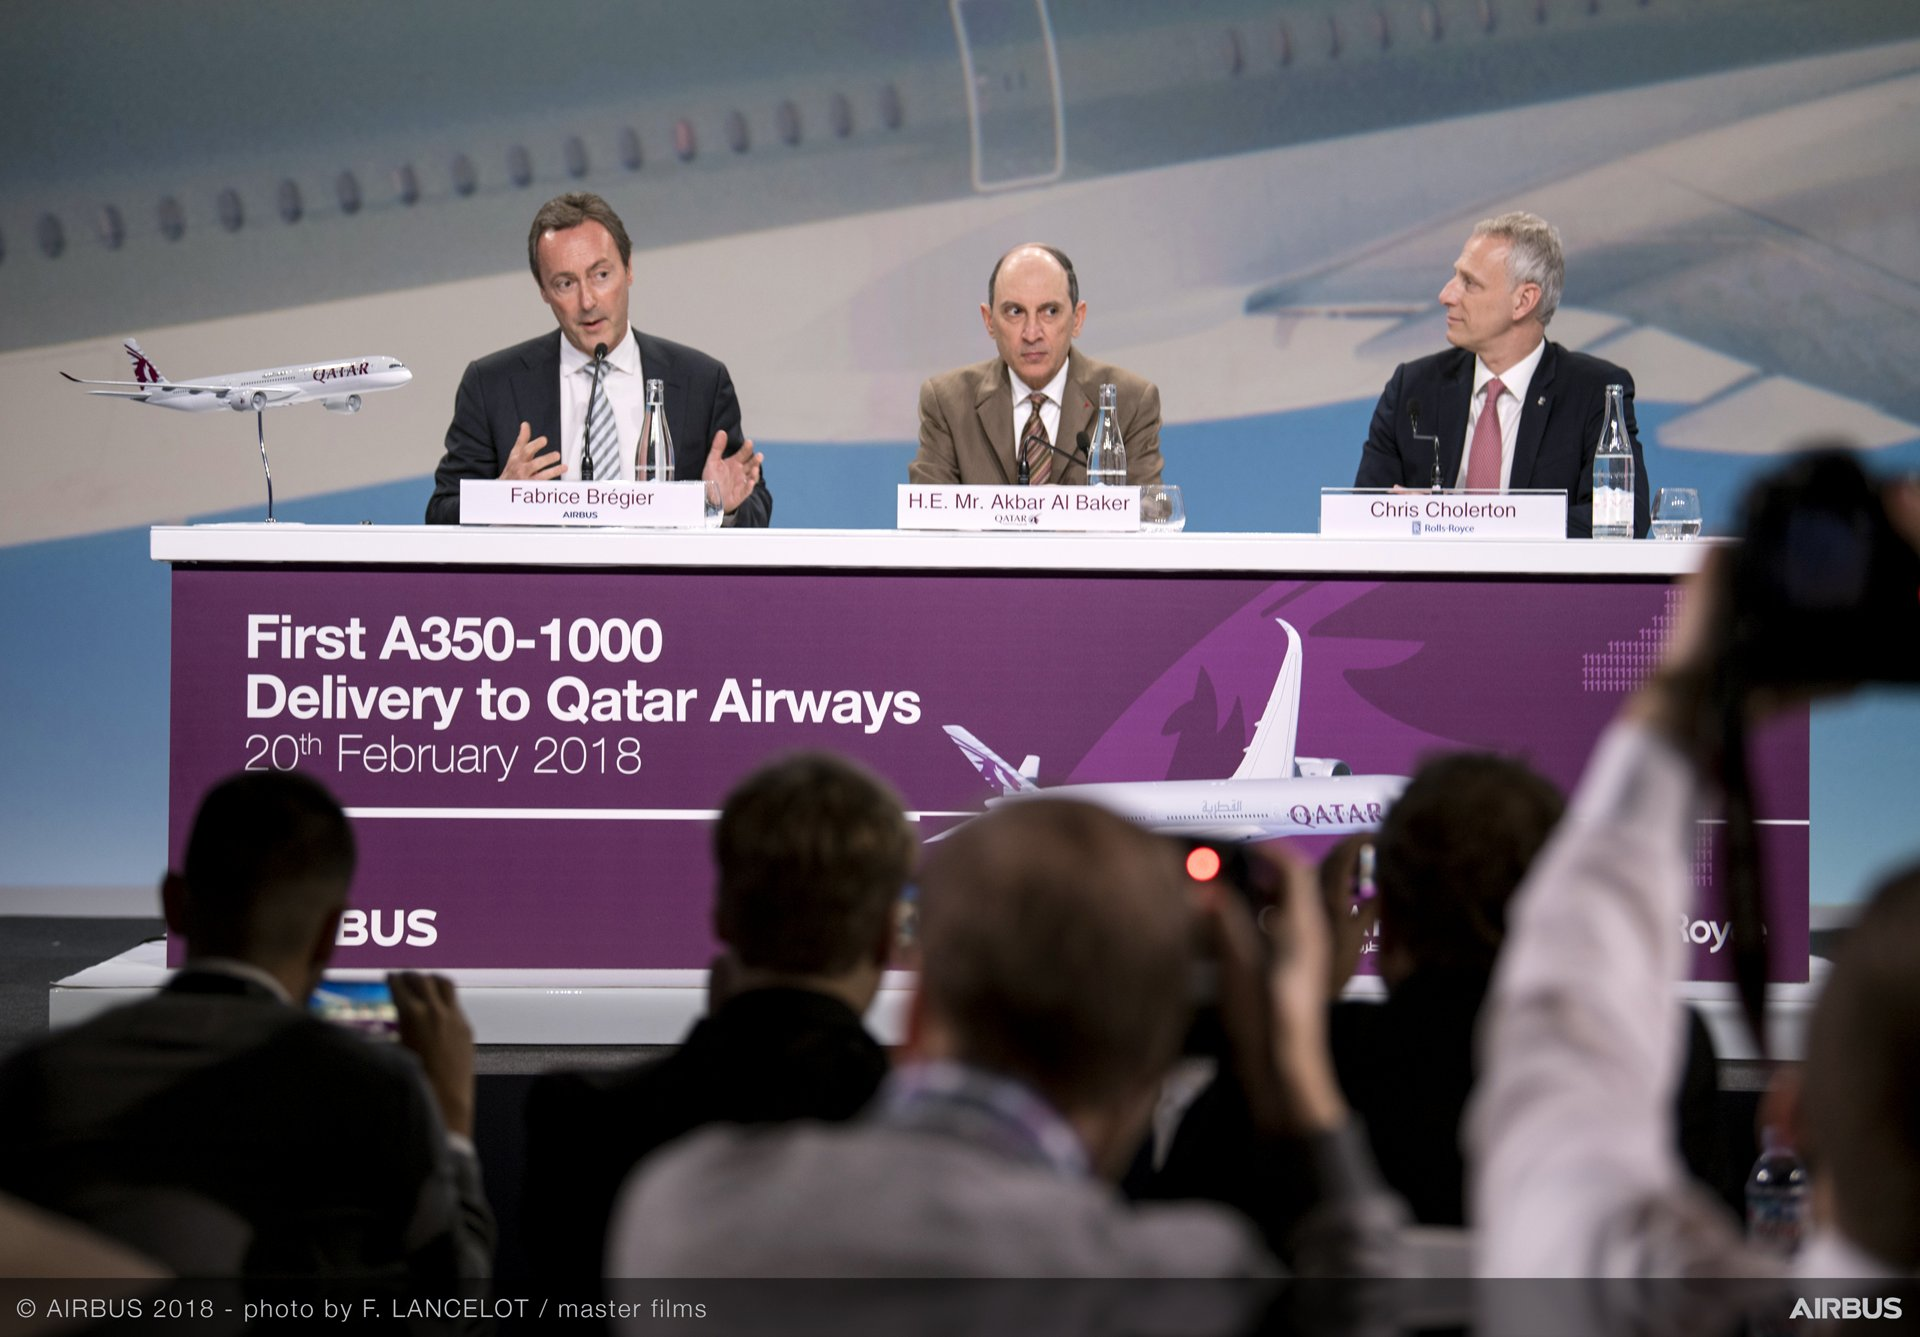 Airbus delivers first A350-1000 to Qatar Airways – 3